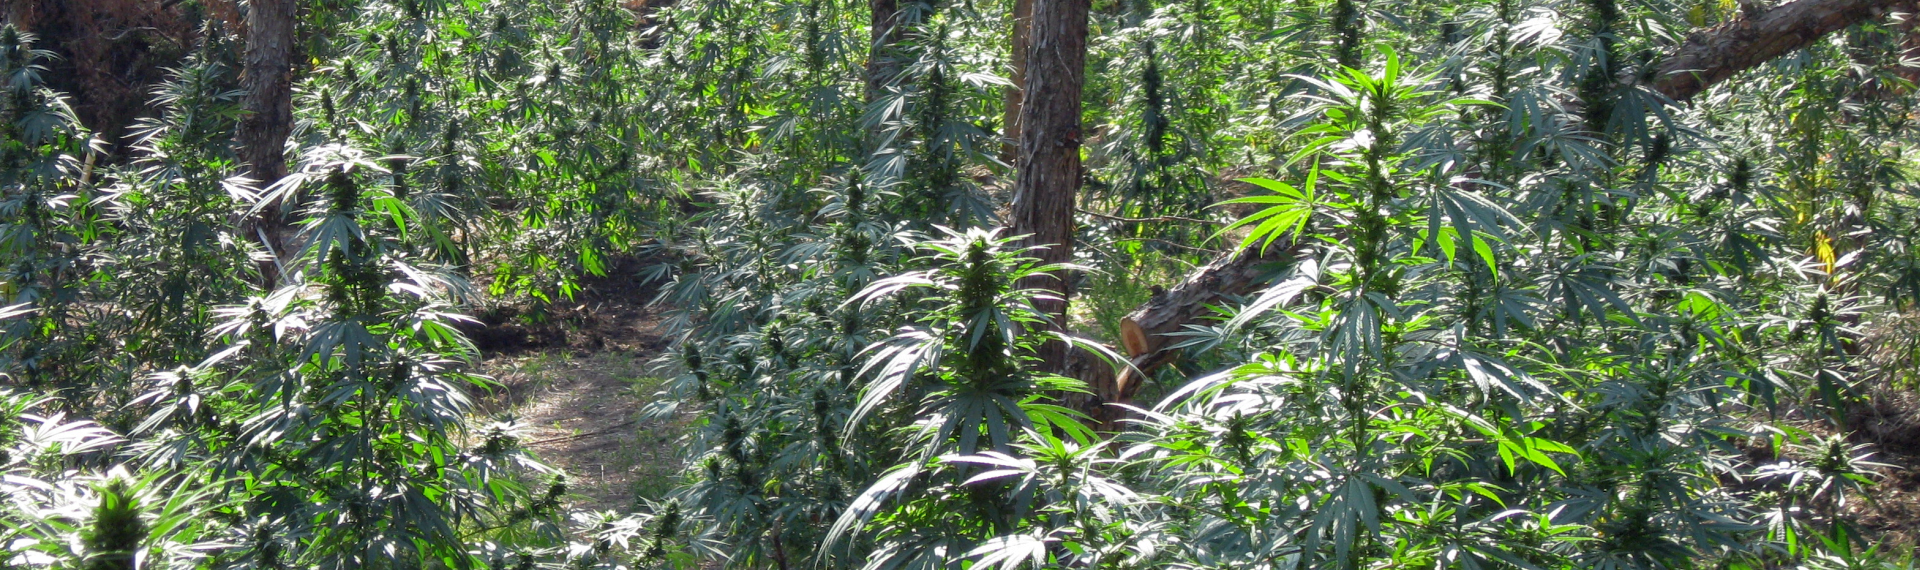 Illegal Marijuana Growing in Forest